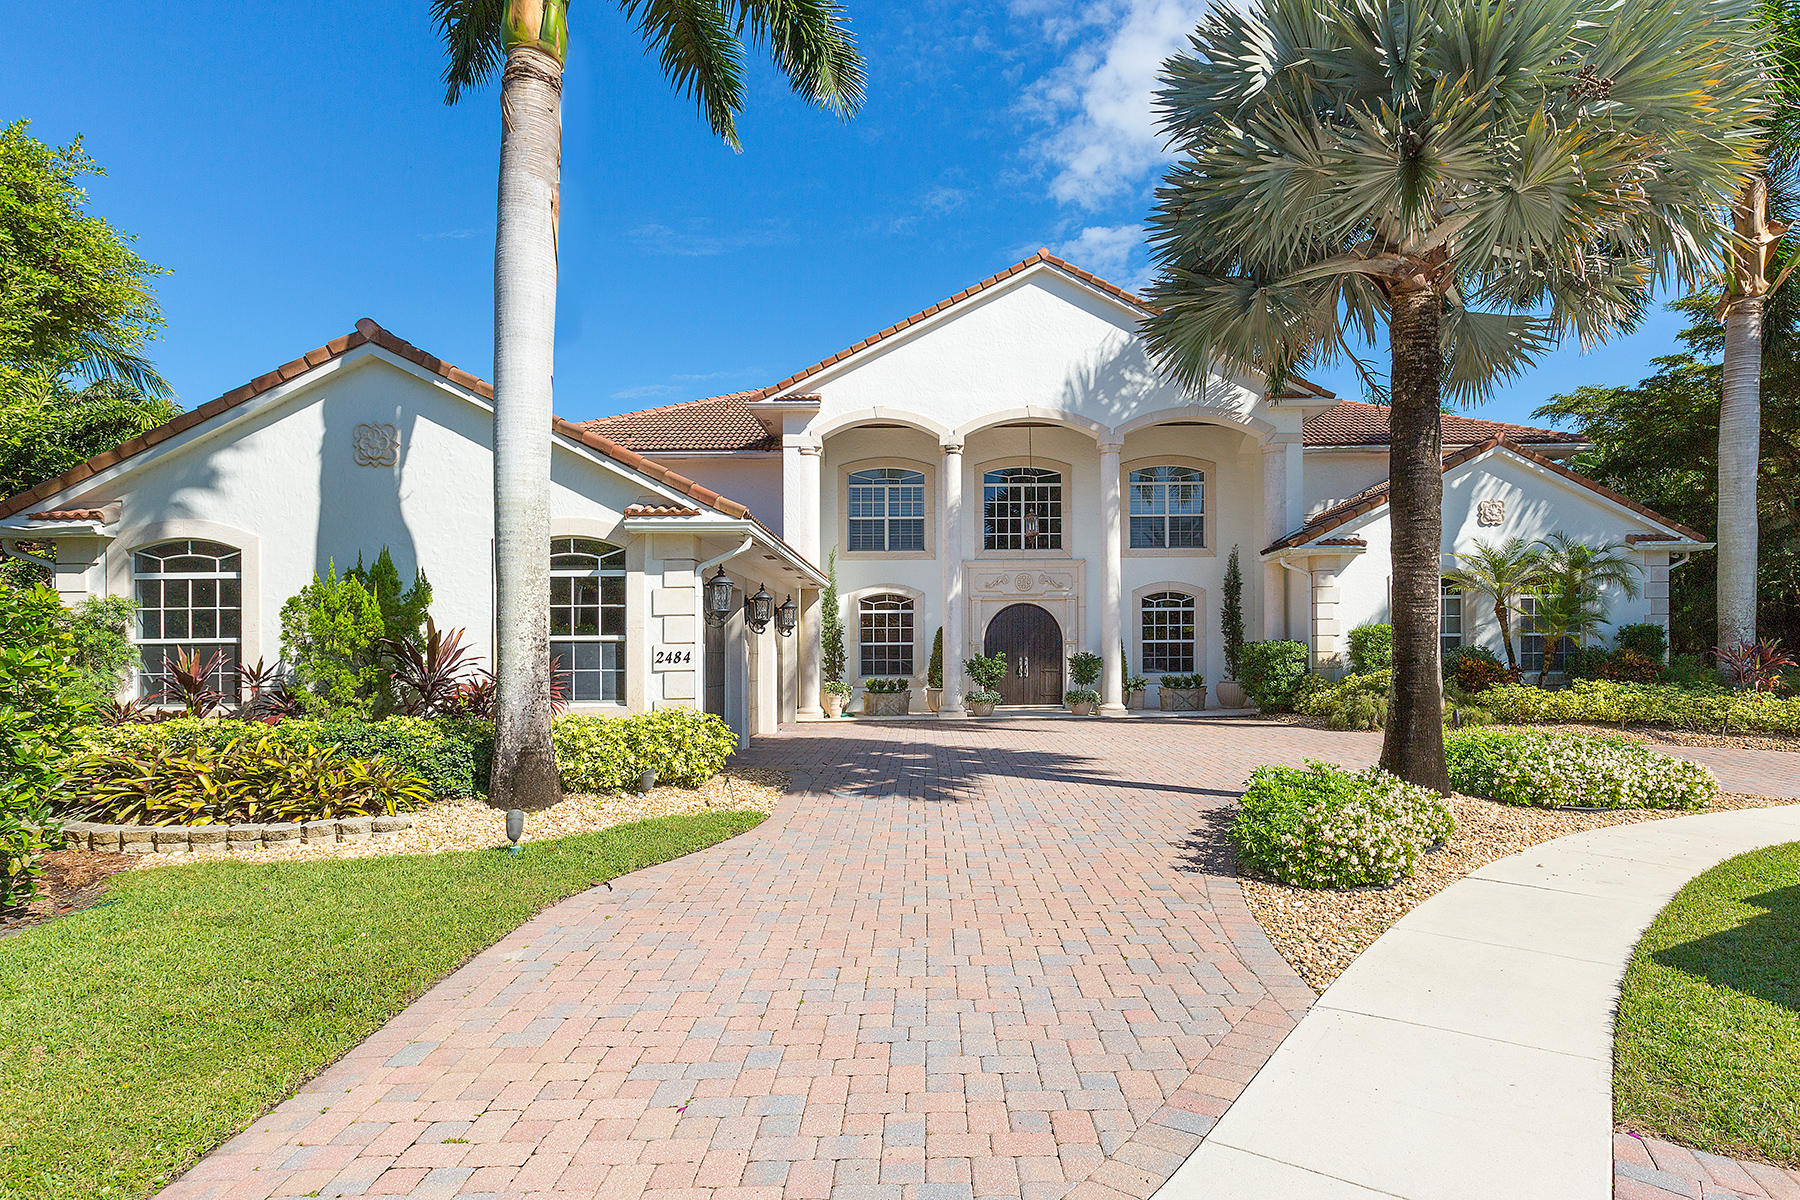 2484 Mizner Lake Court